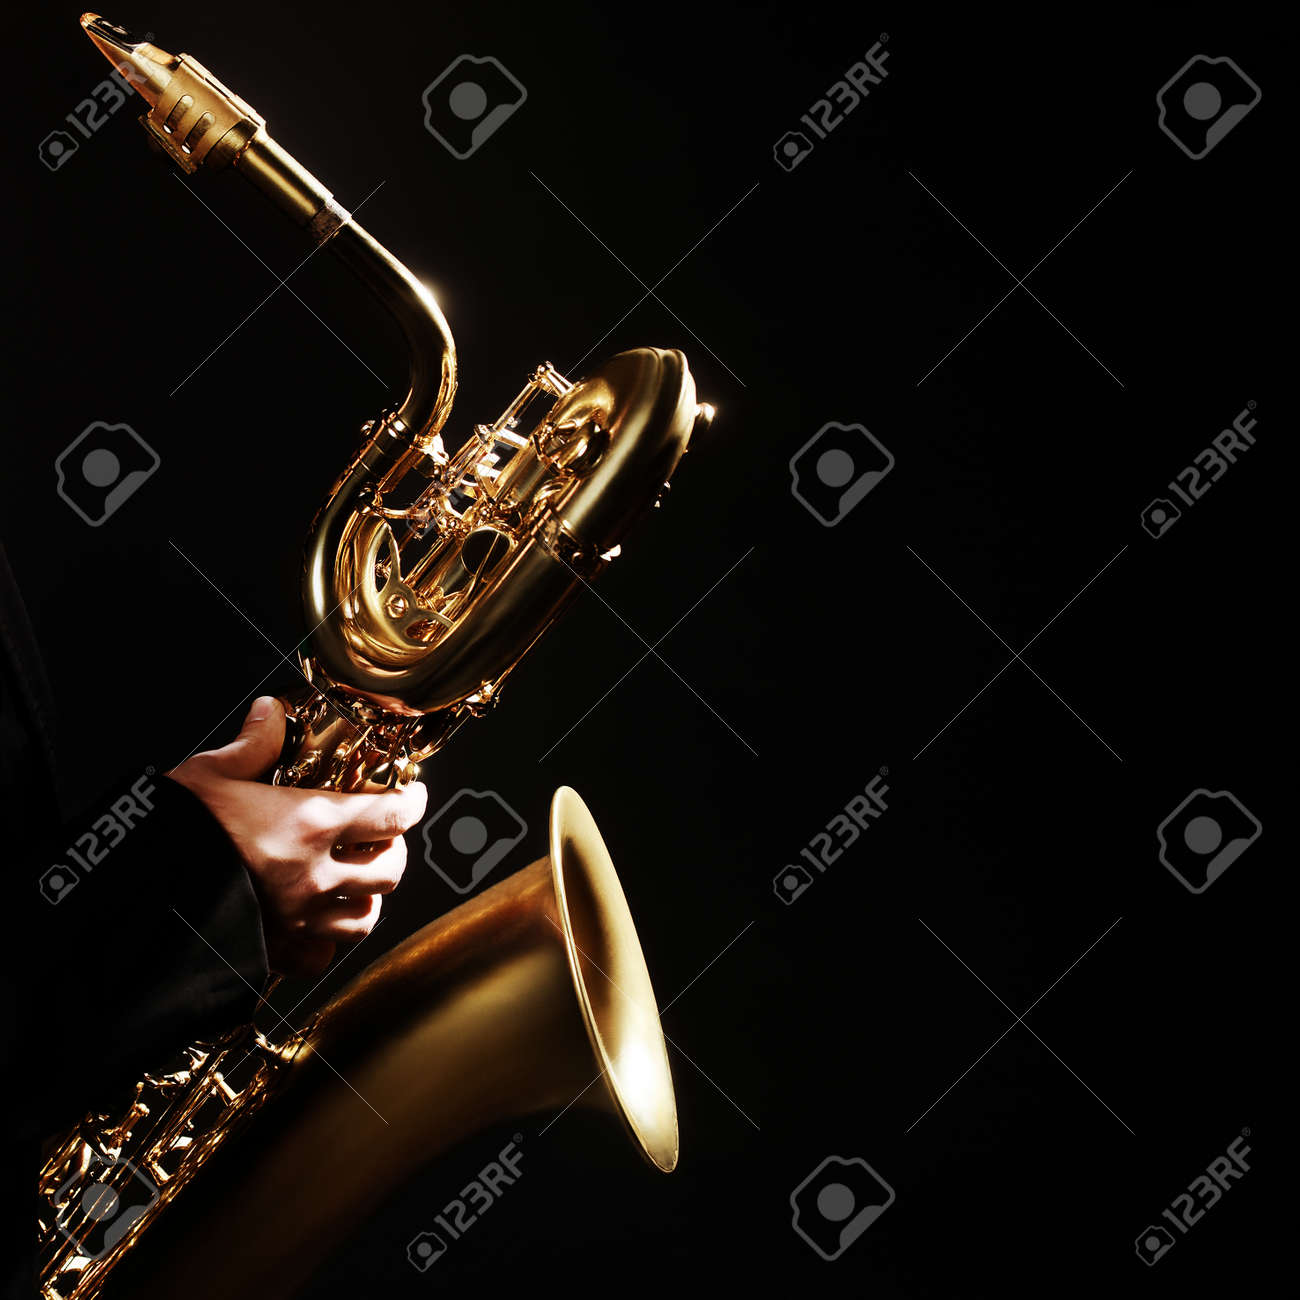 Saxophone player Jazz Music Instrument Baritone Sax isolated on black Standard-Bild - 47529427